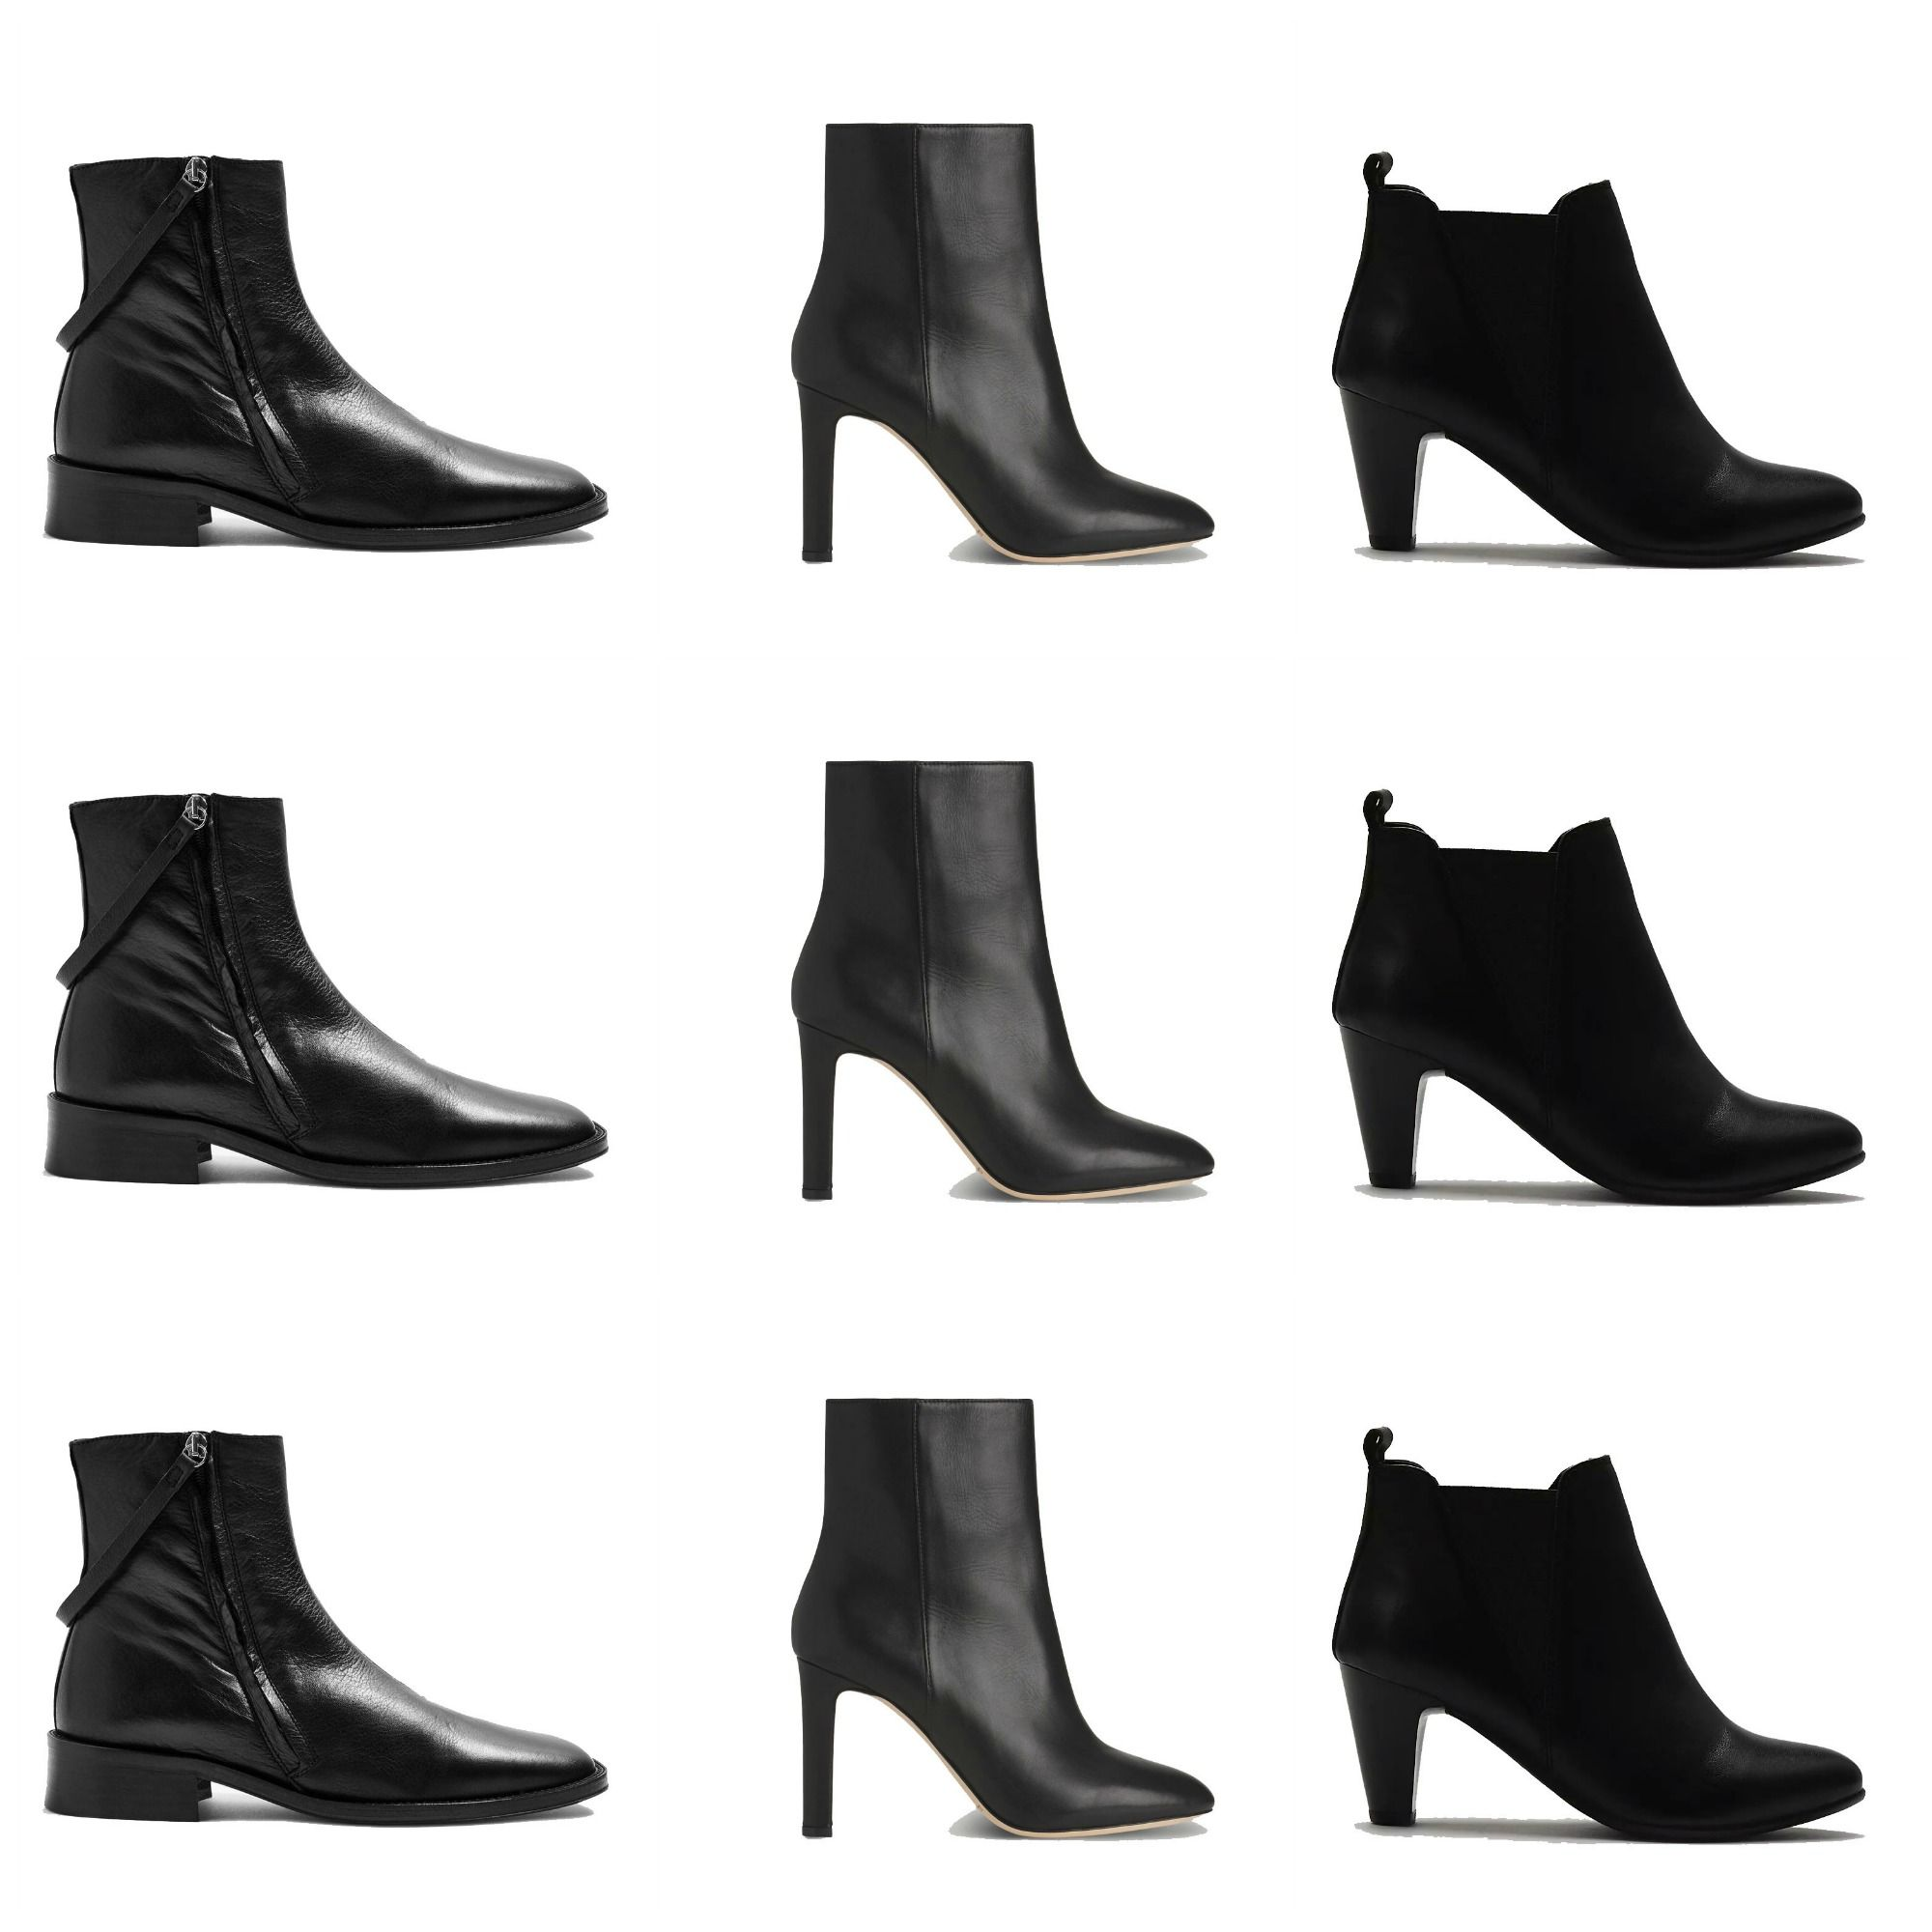 e233c353f8d 15 of the best black leather ankle boots to buy now